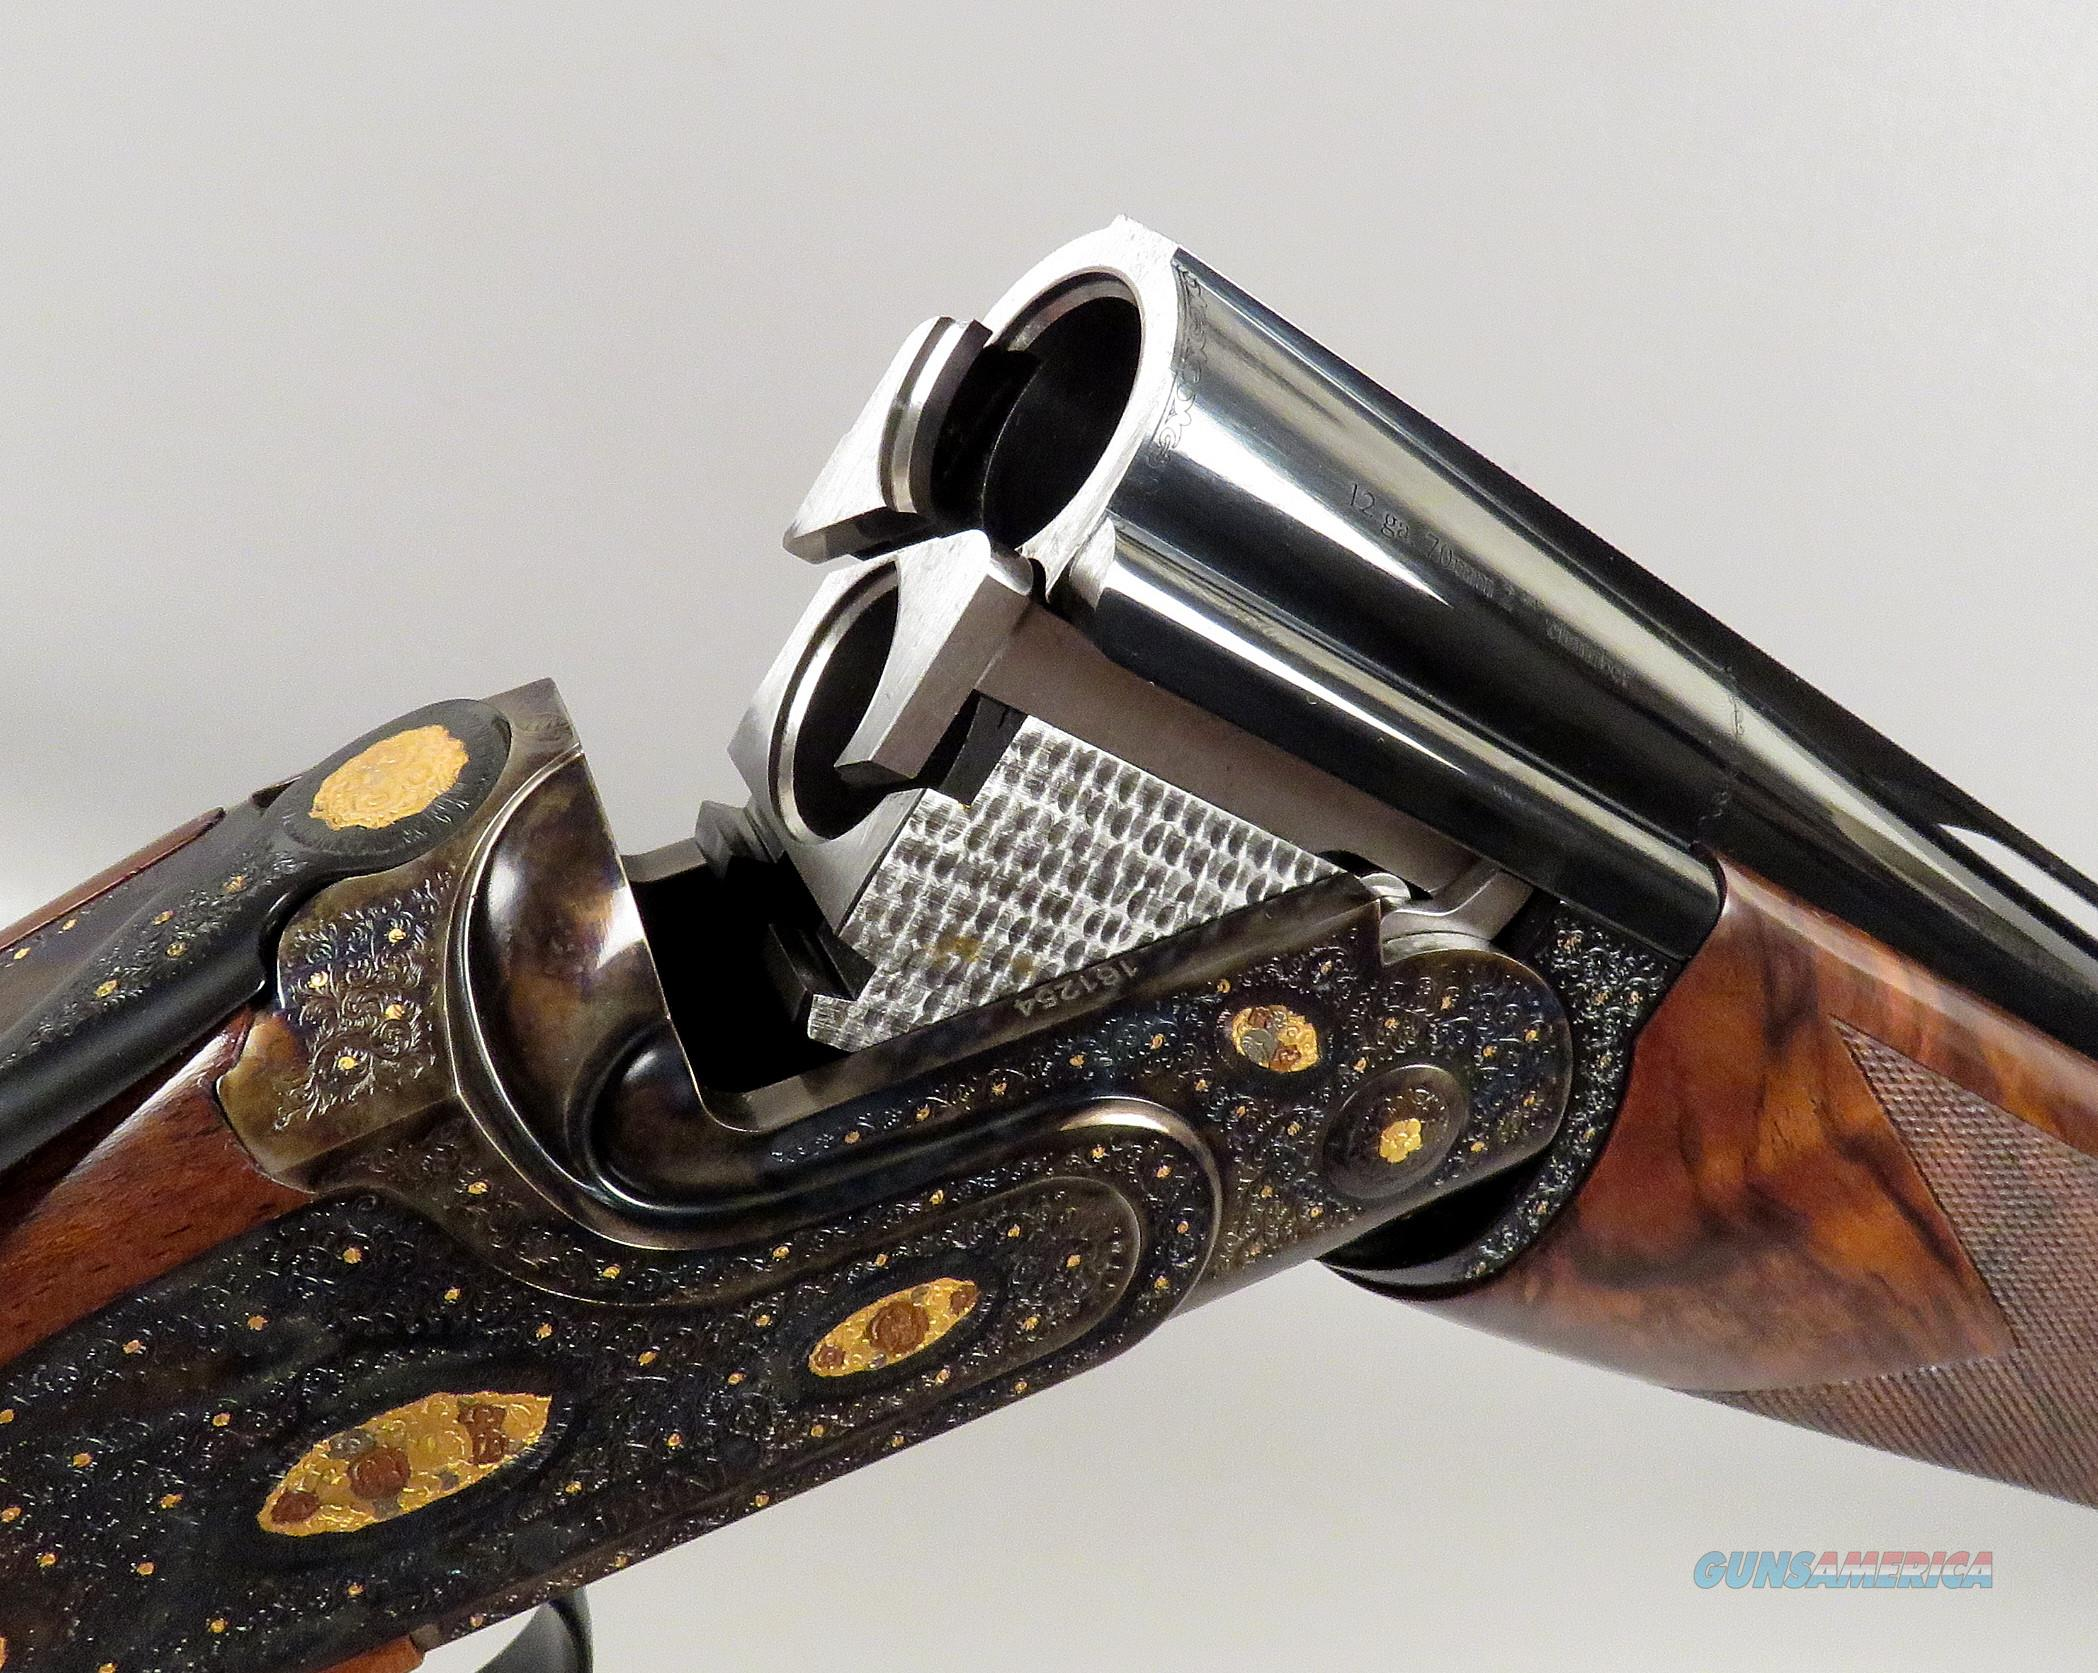 Caesar Guerini Elite ESSEX LIMITED GOLD SPORTING 12 Ga Shotgun NIB  Guns > Shotguns > Guerini Shotuns